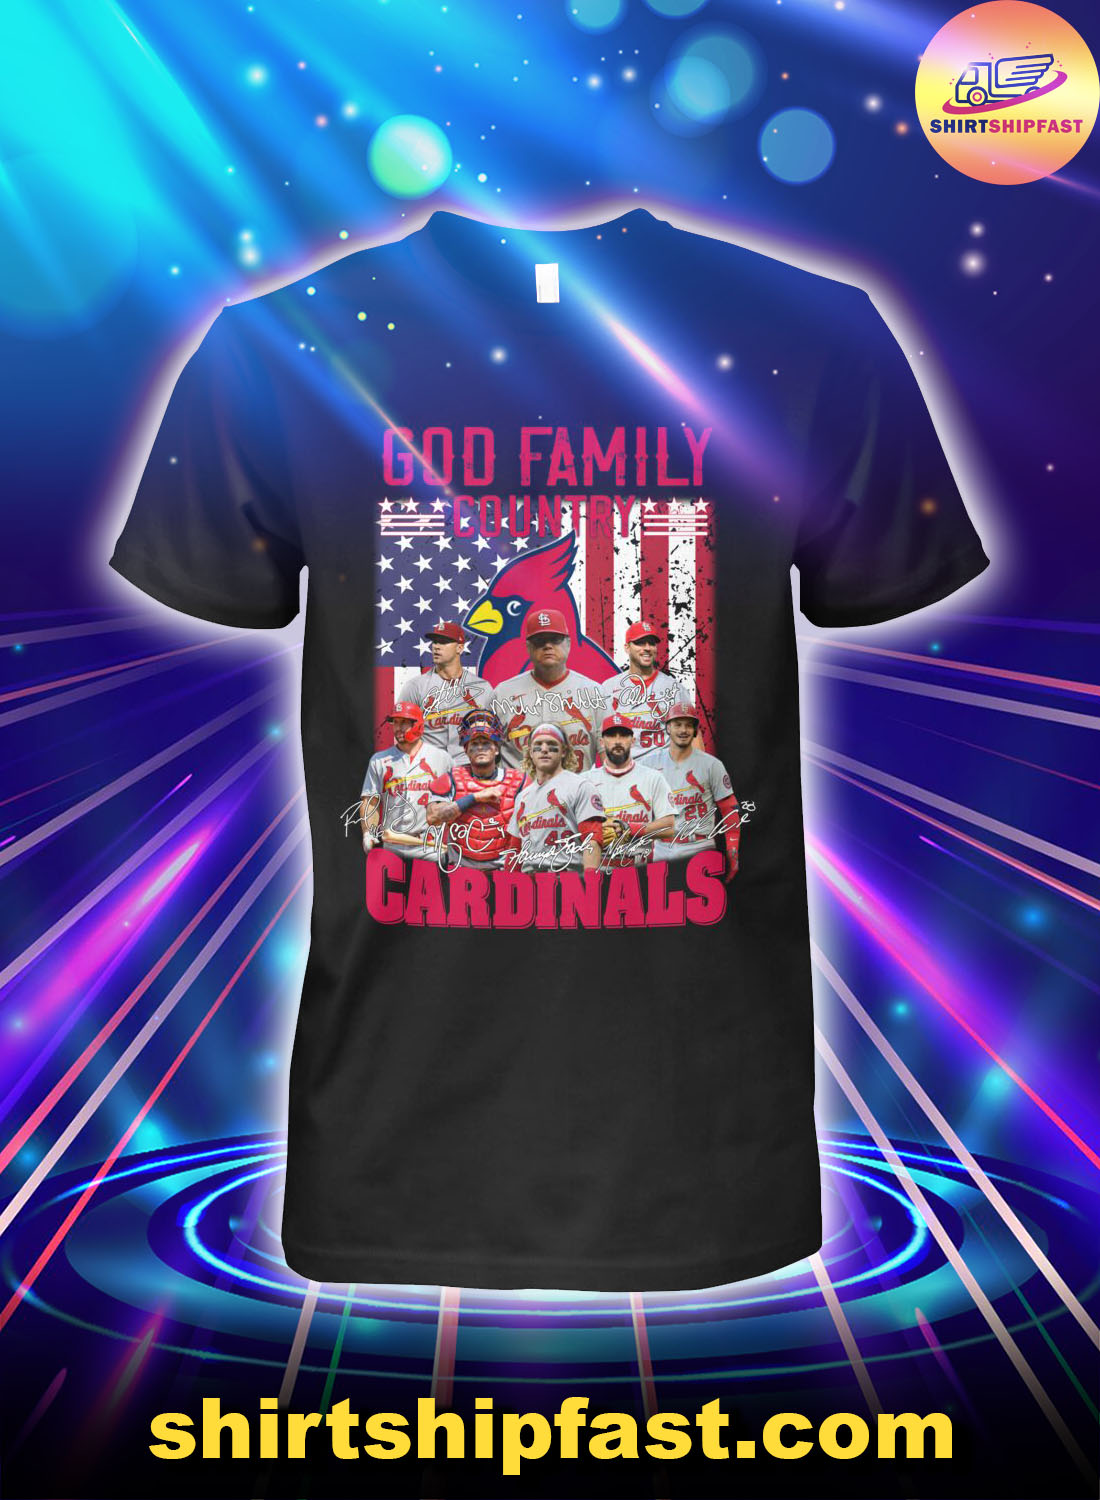 God-family-country-St.-Louis-Cardinals-American-flag-shirt - 1